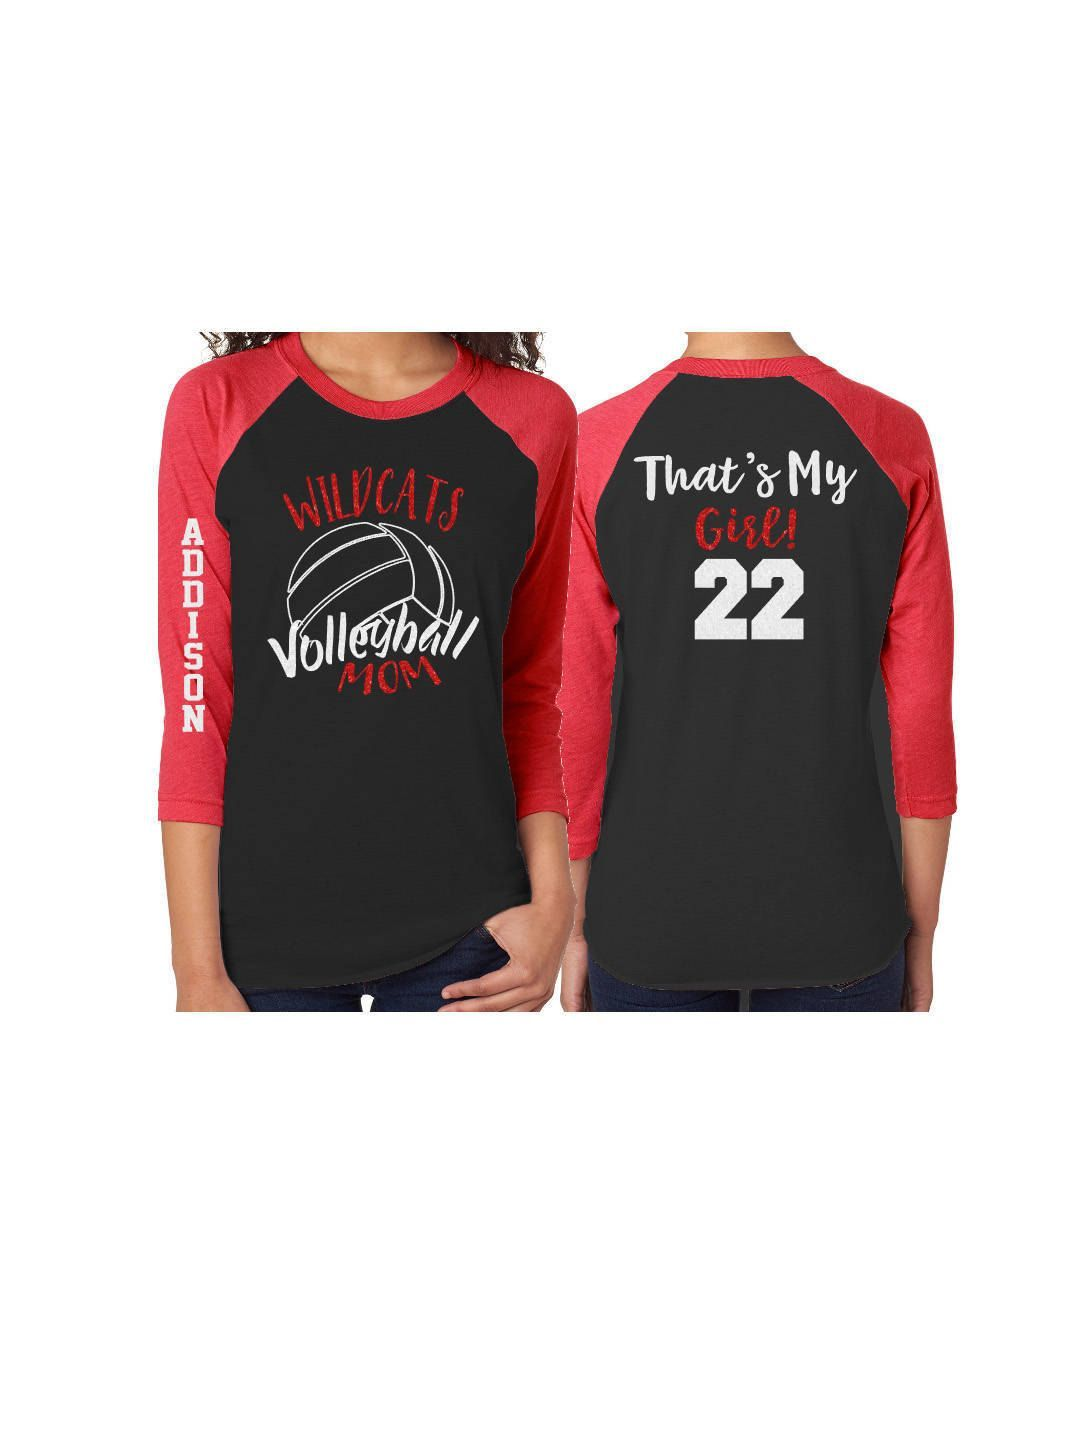 Glitter Volleyball Mom Baseball Shirt Customized Volleyball Shirt By Gavinsallyedesigns On Etsy Volleyball Mom Shirts Volleyball Shirt Designs Volleyball Mom